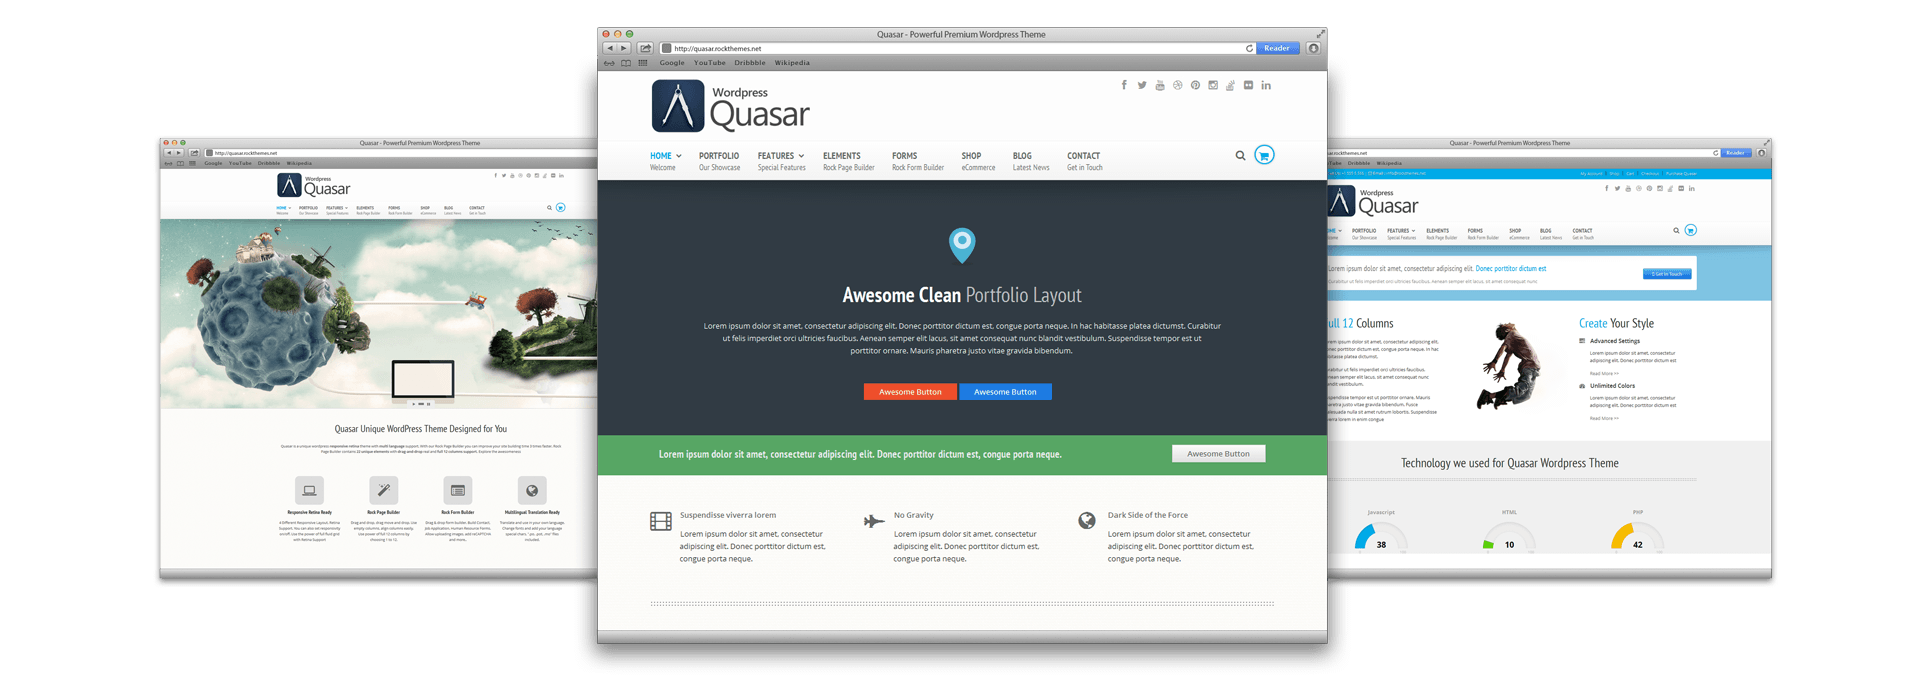 quasar-safari-showcase(1)